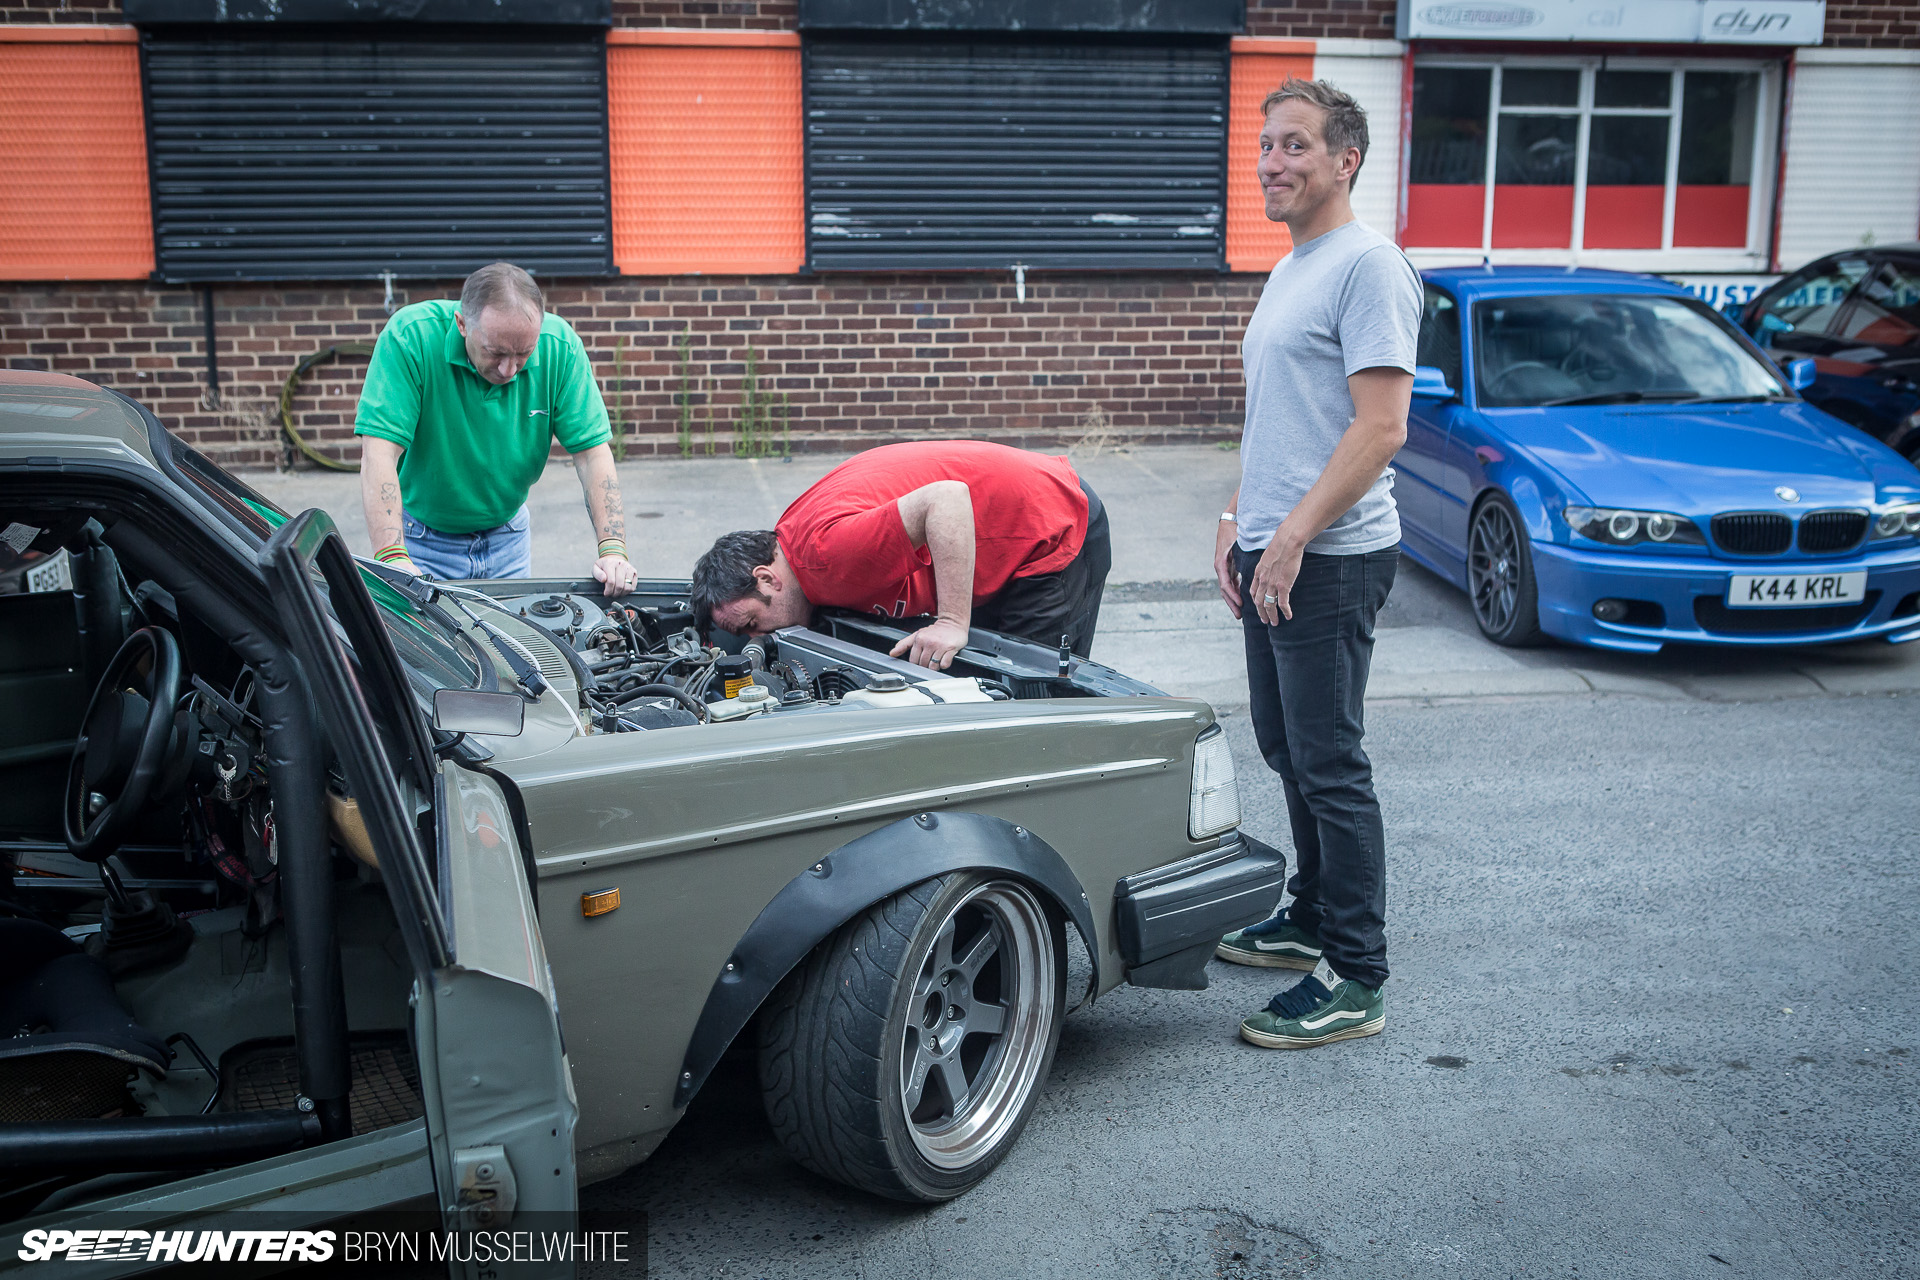 Volvo-turbo-wagon-strip-club-speedhunters-bryn-musselwhite-38-of-179